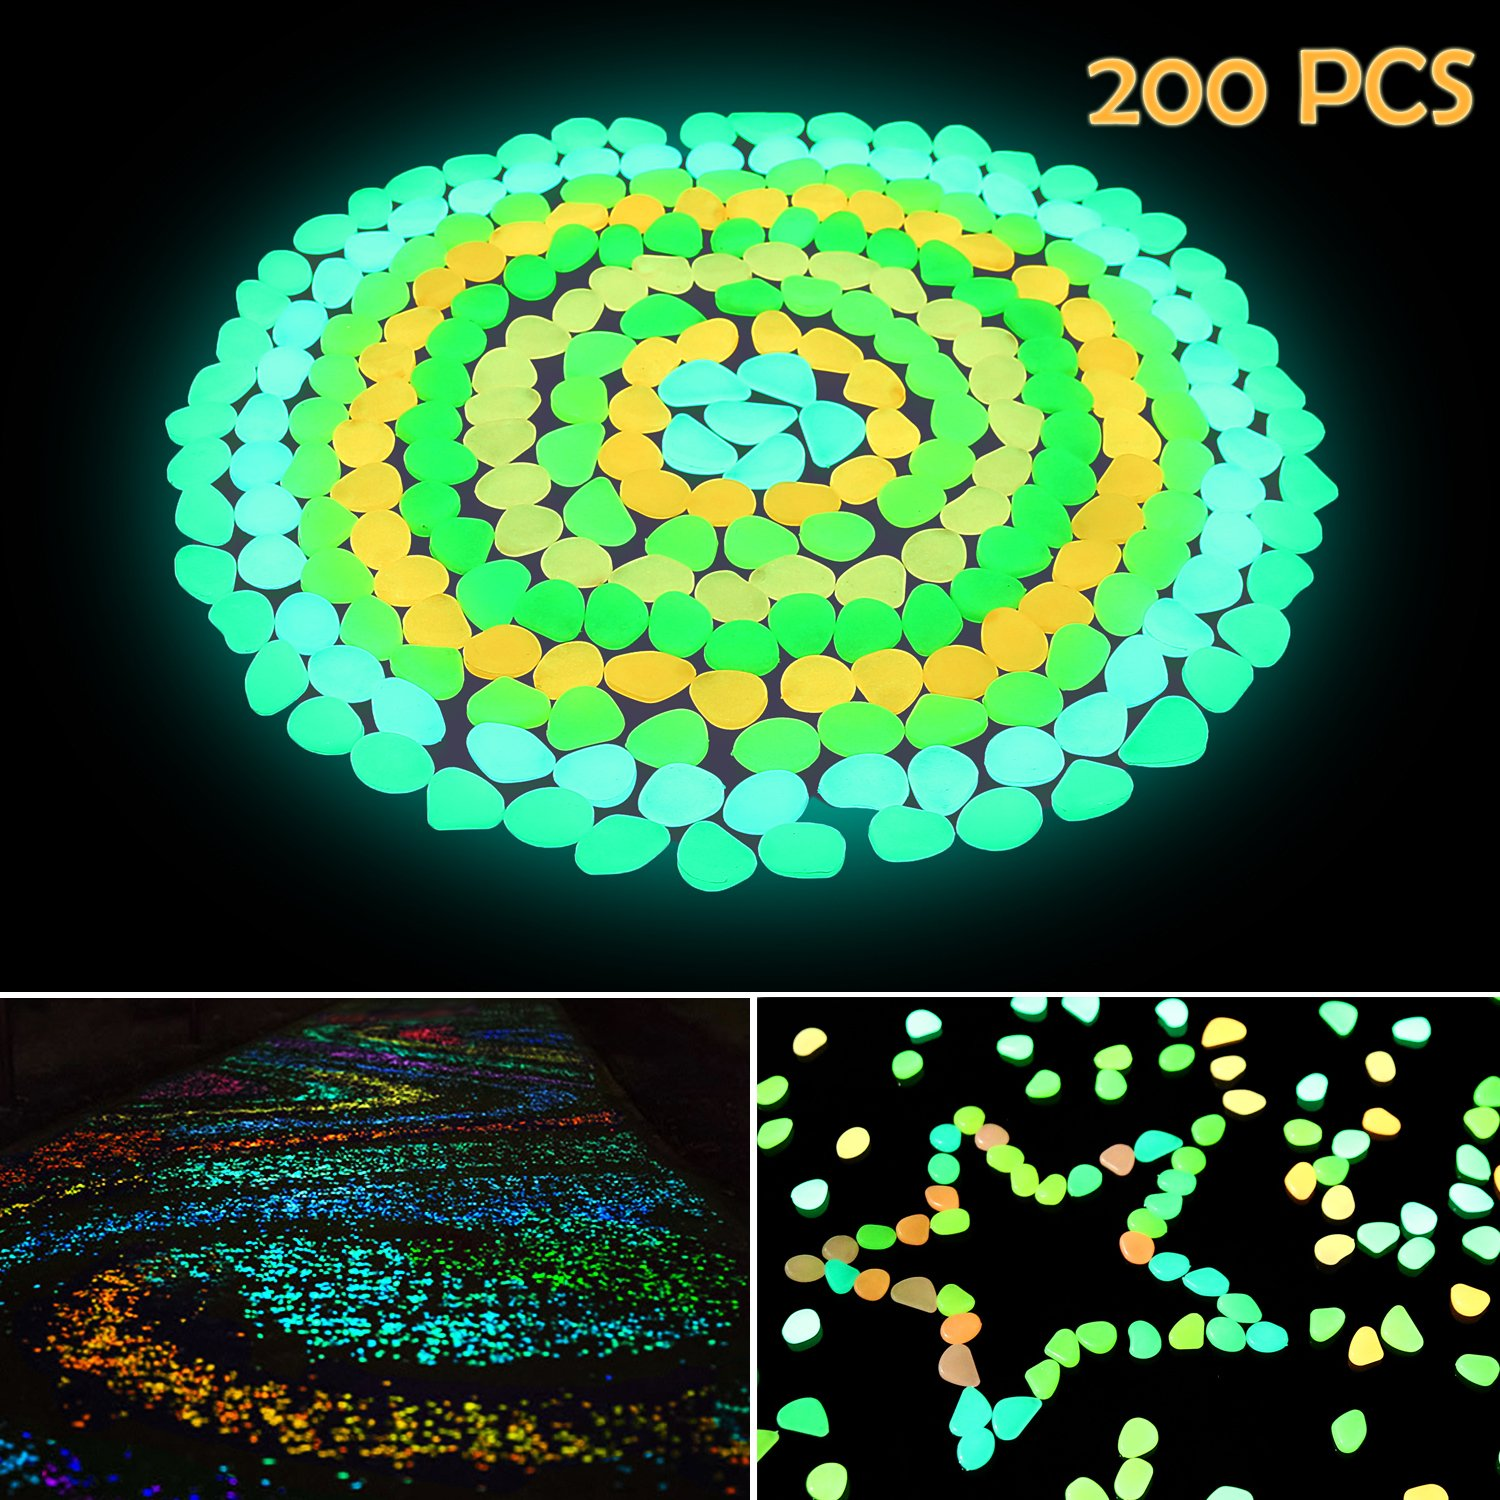 Ohuhu 200 Pcs Colorful Glowing Garden Pebbles, Glow in the Dark Decorative Stones for Walkways & Decor, Solar Power Luminous Stones Glowing Rocks for Plants Pot, Fish Tank etc